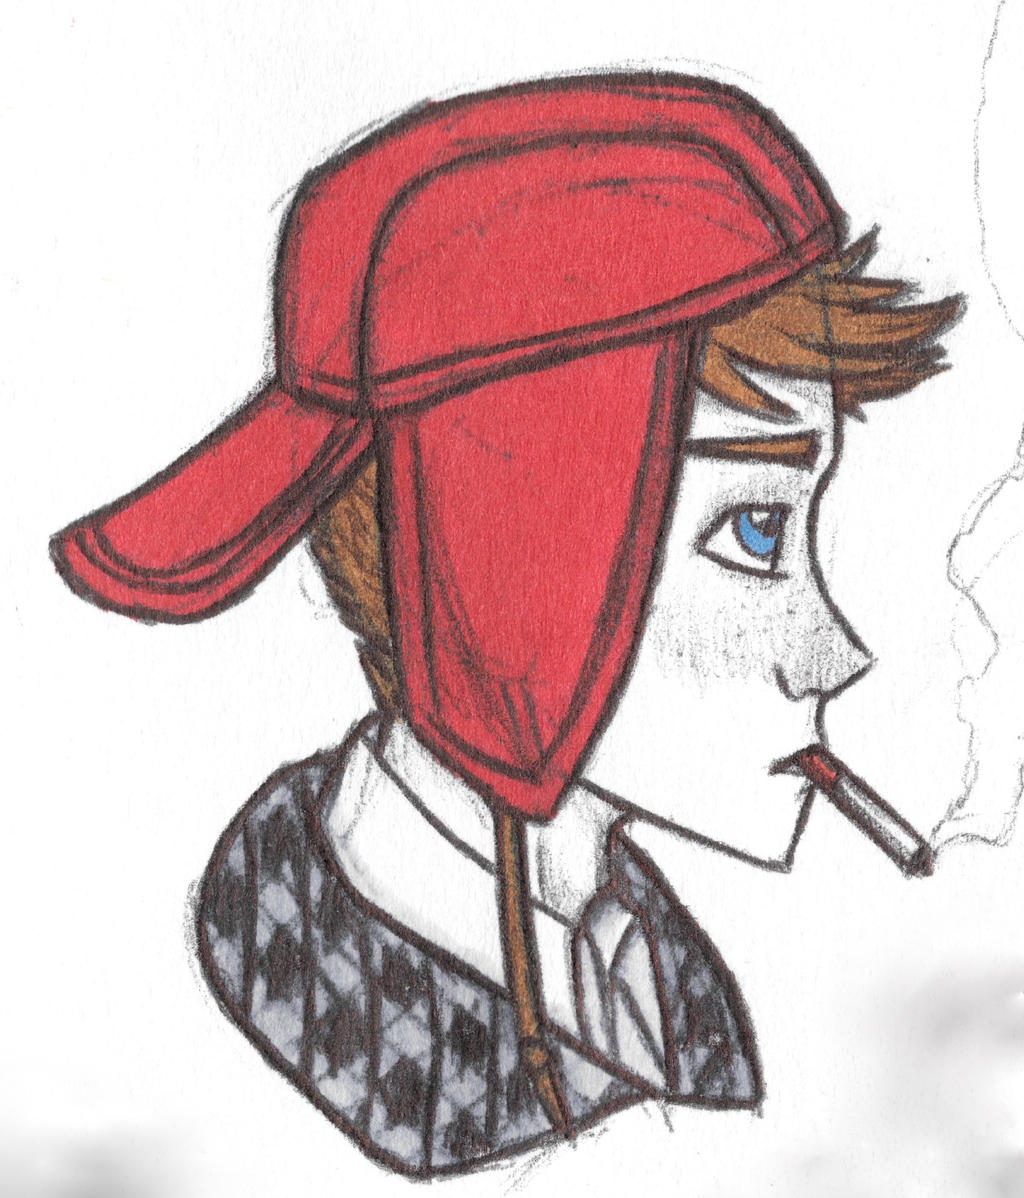 holden coulifeild Holden caulfield in the novel the catcher in the rye by j d slinger the main character holder coalfield is obsessed with phonies and the loss of innocence.